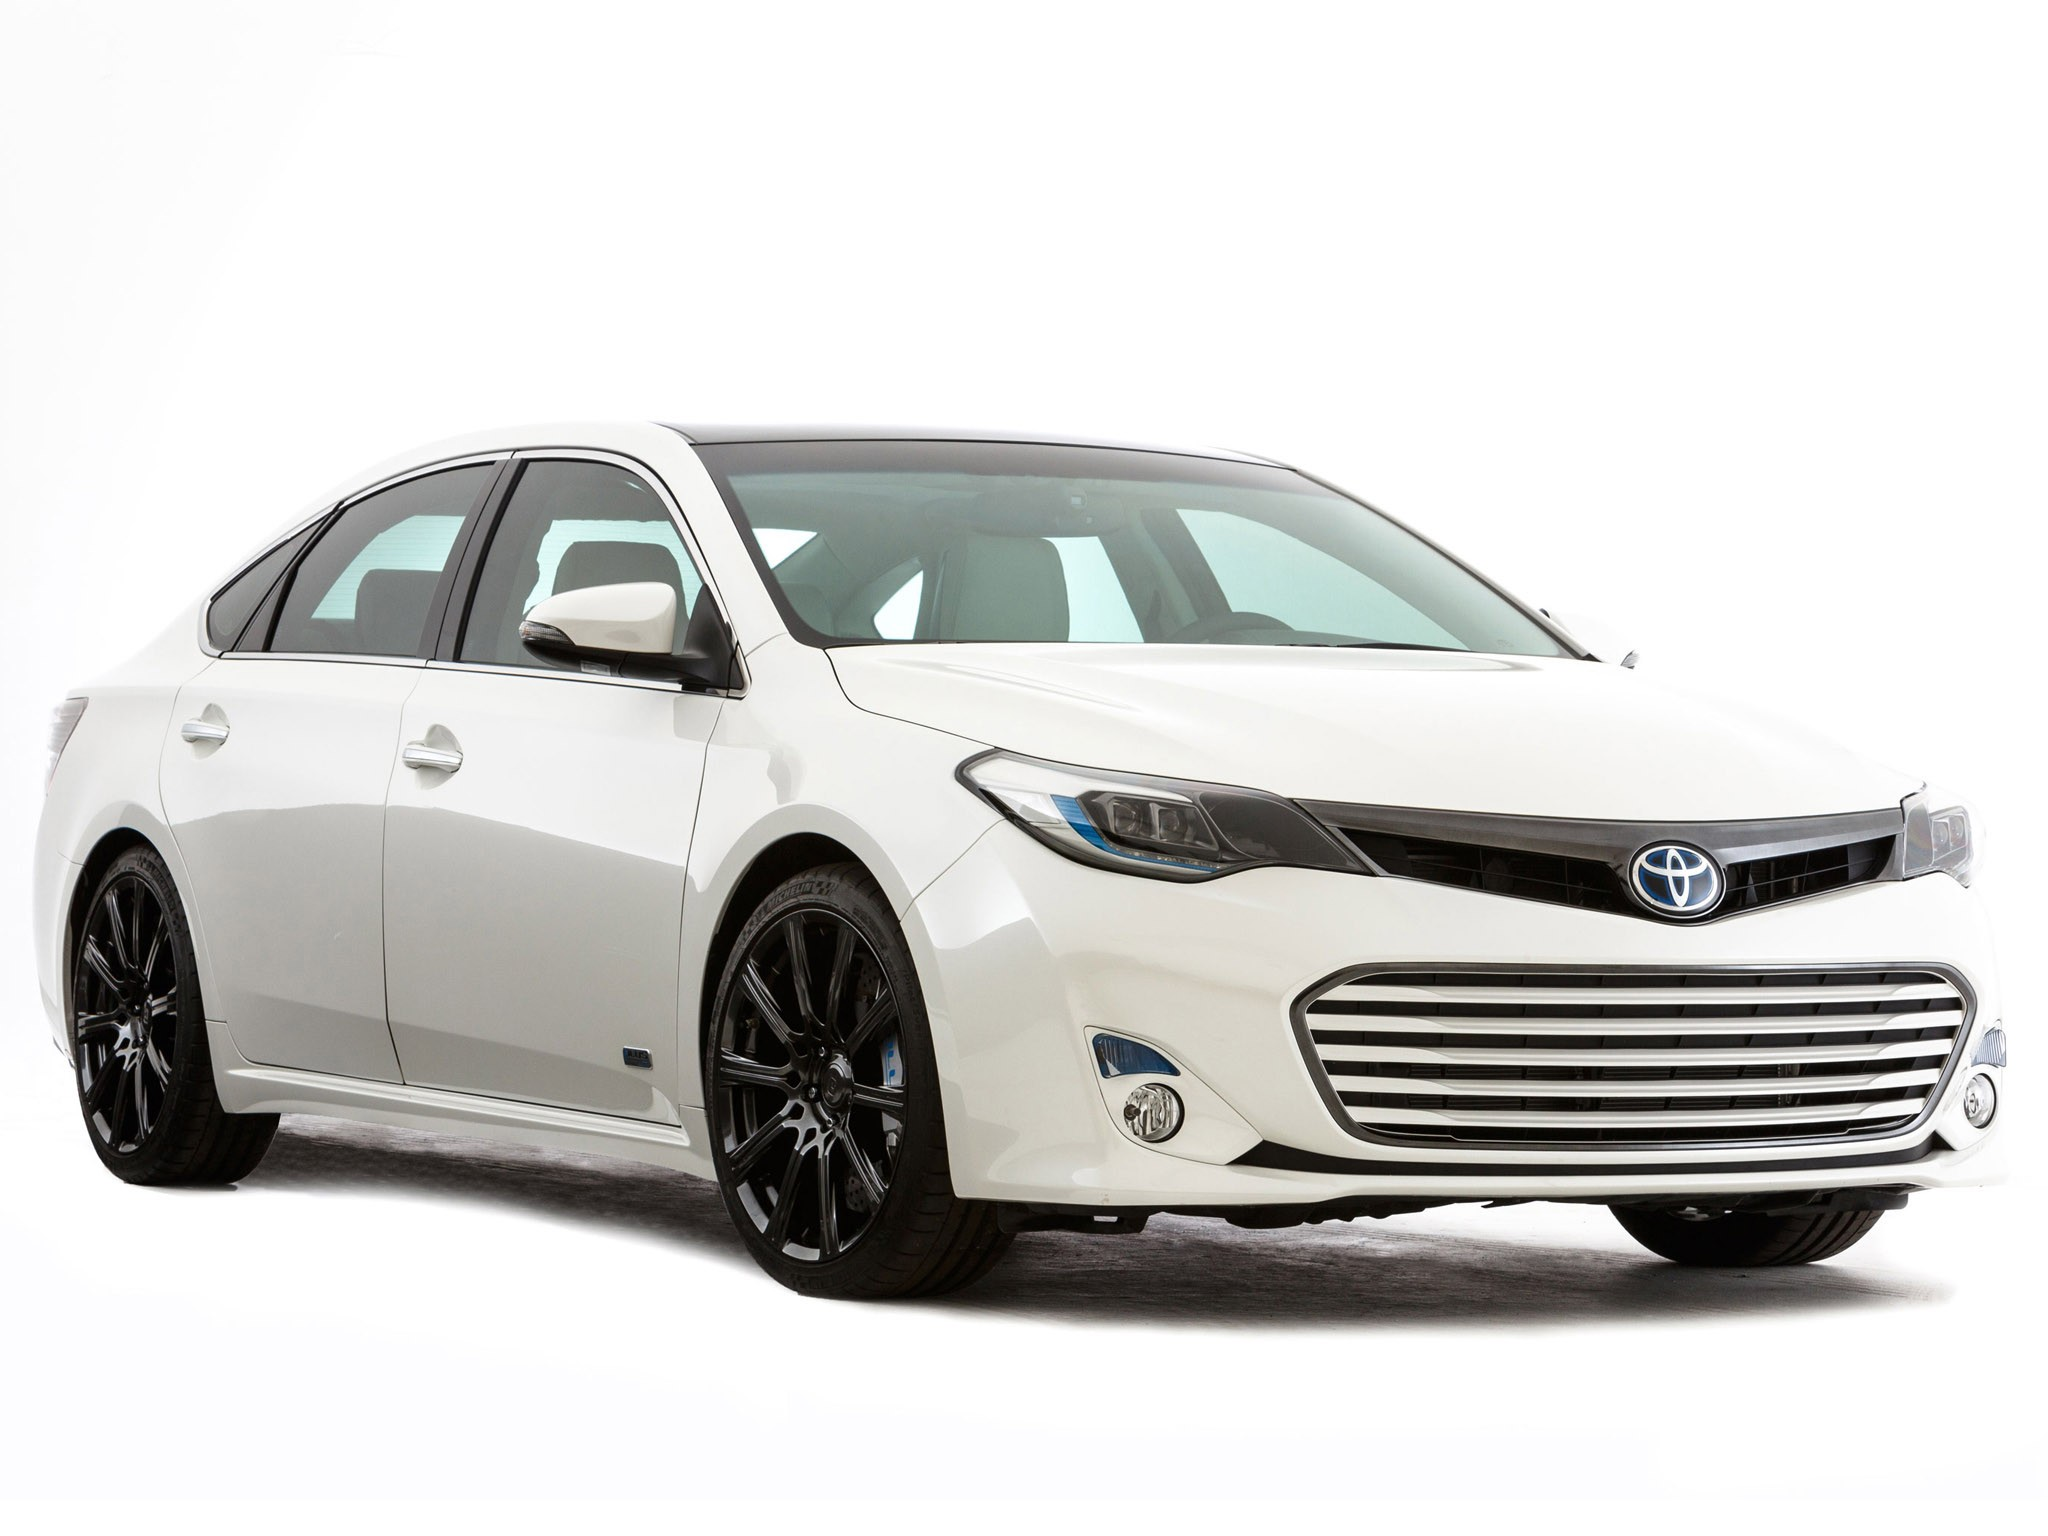 2012 Toyota Avalon HV Edition